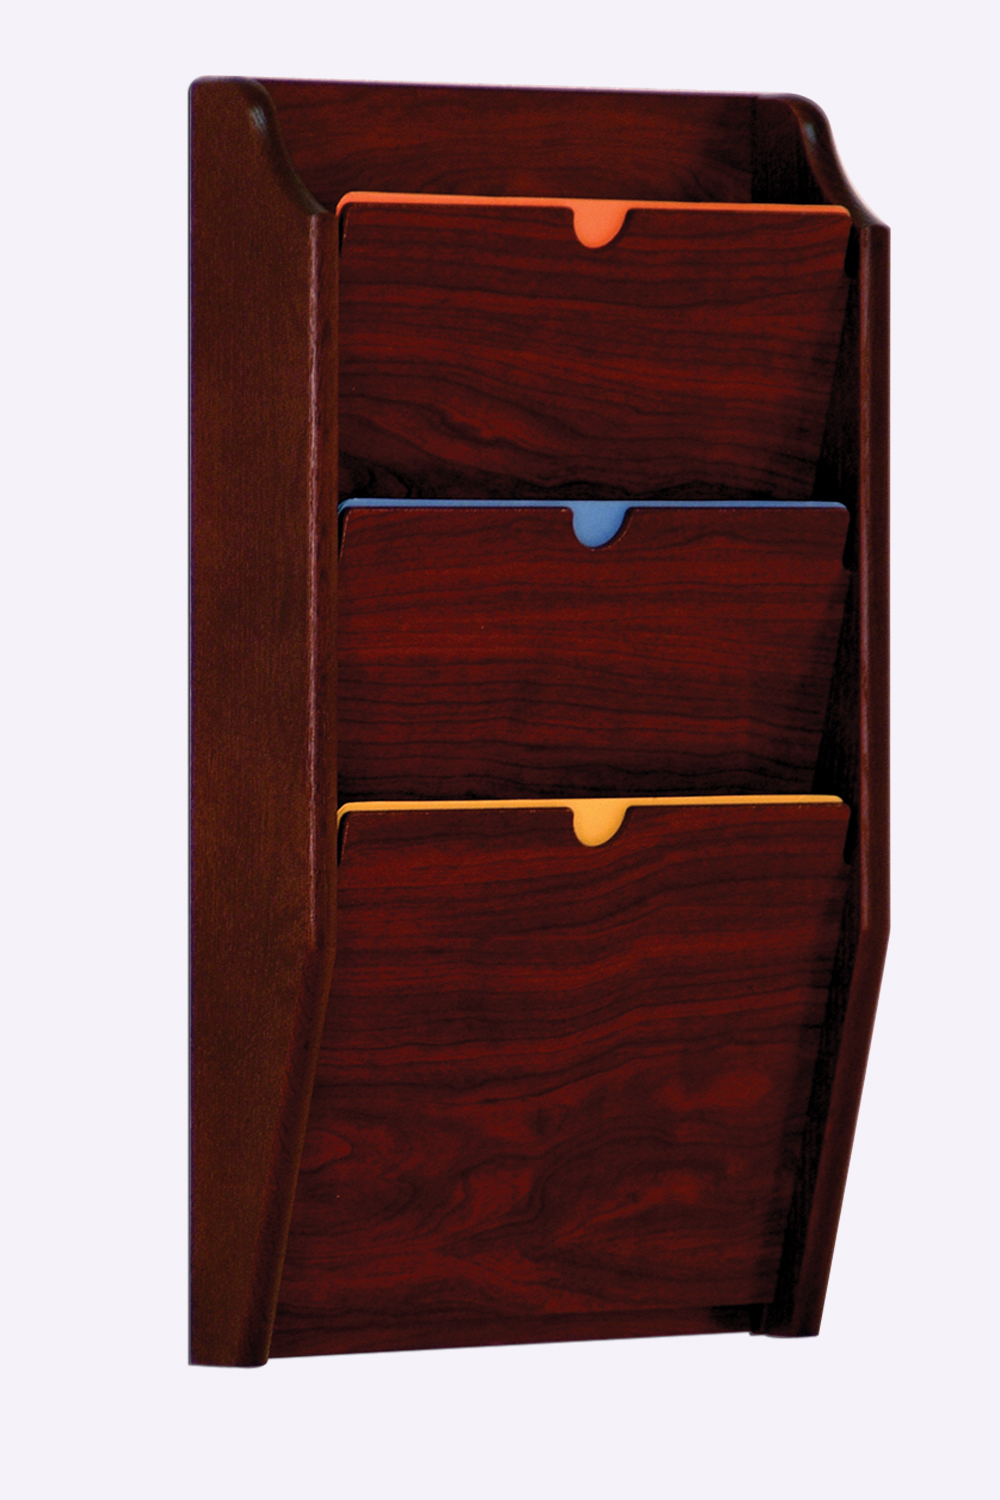 Offex 3 Pocket Privacy Letter Size Chart Holder - HIPAA Compliant Mahogany